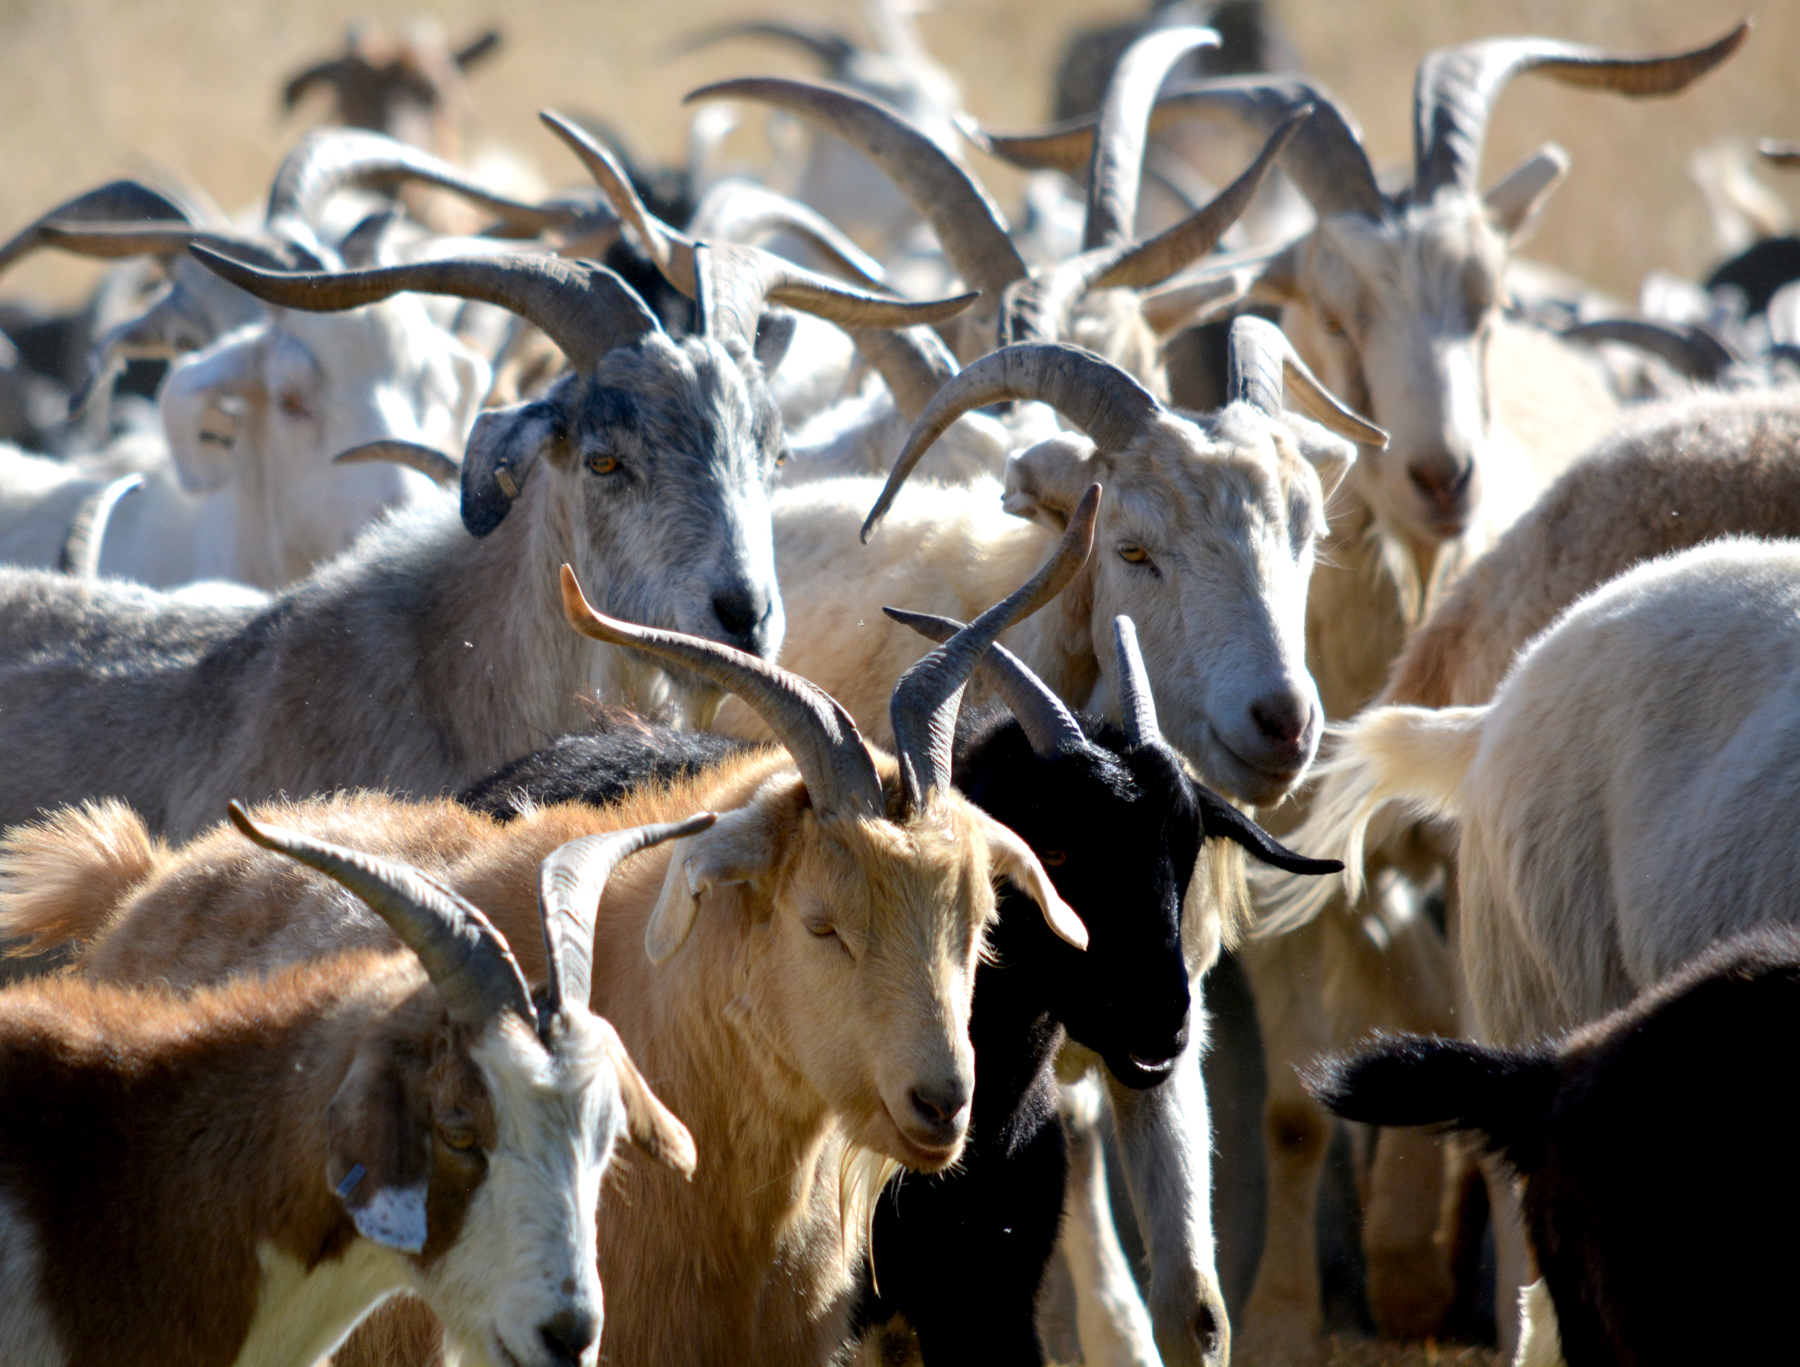 These goats will arrive at Bear Creek Park on Sunday. _ Photo courtesy El Paso County_194159